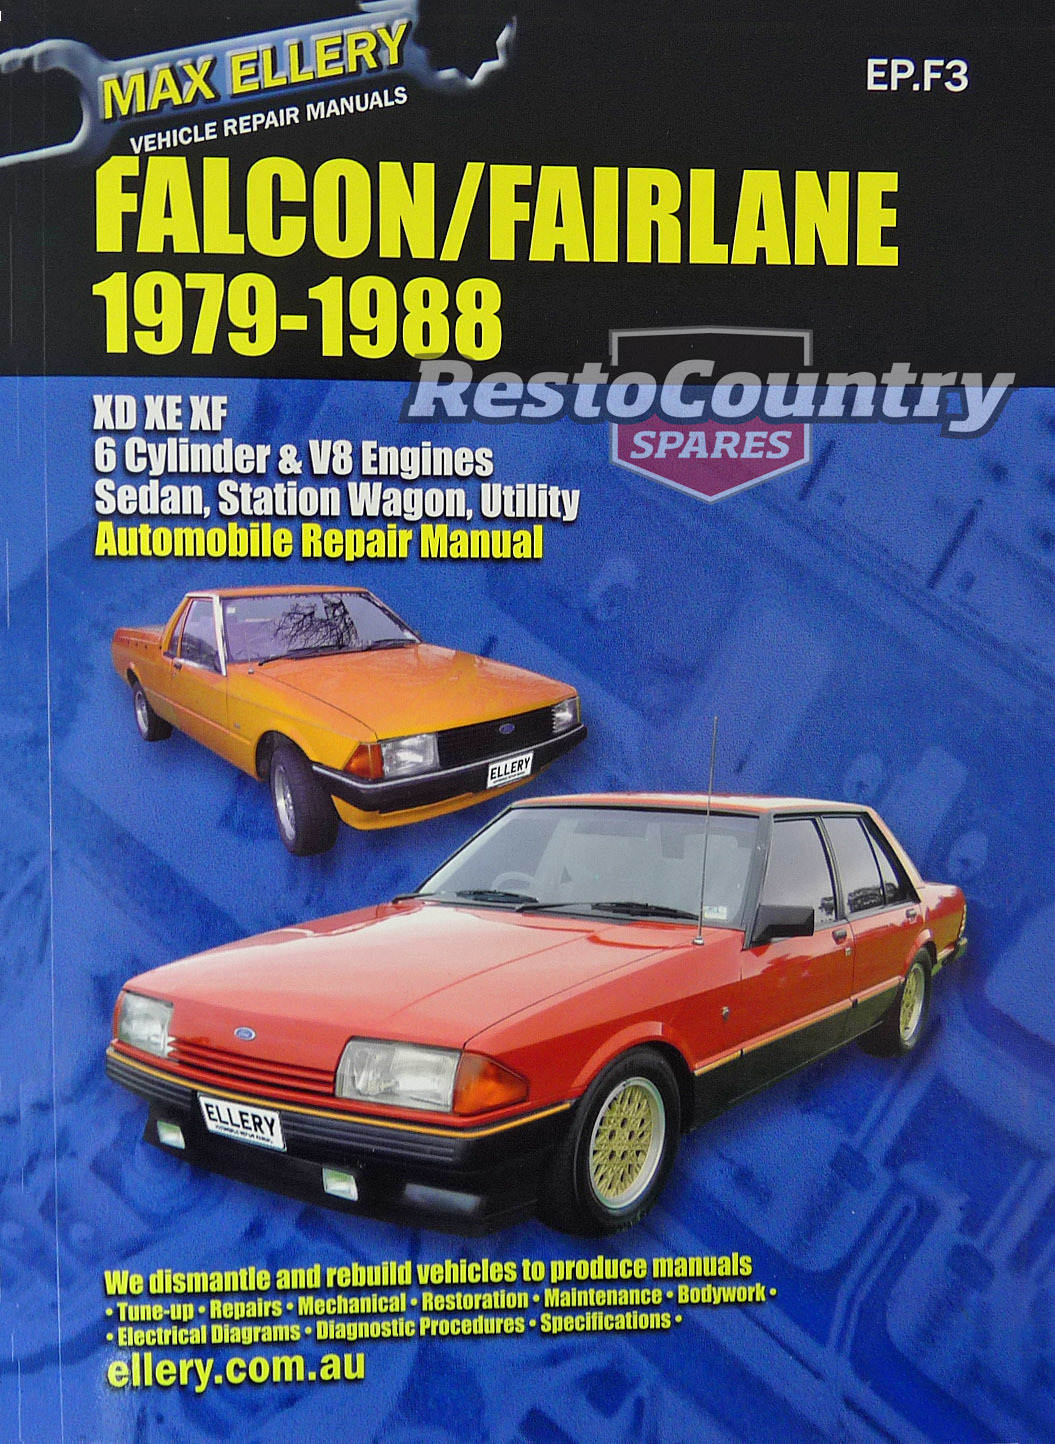 hight resolution of ford falcon fairlane xd xe xf workshop repair manual 1979 88 book